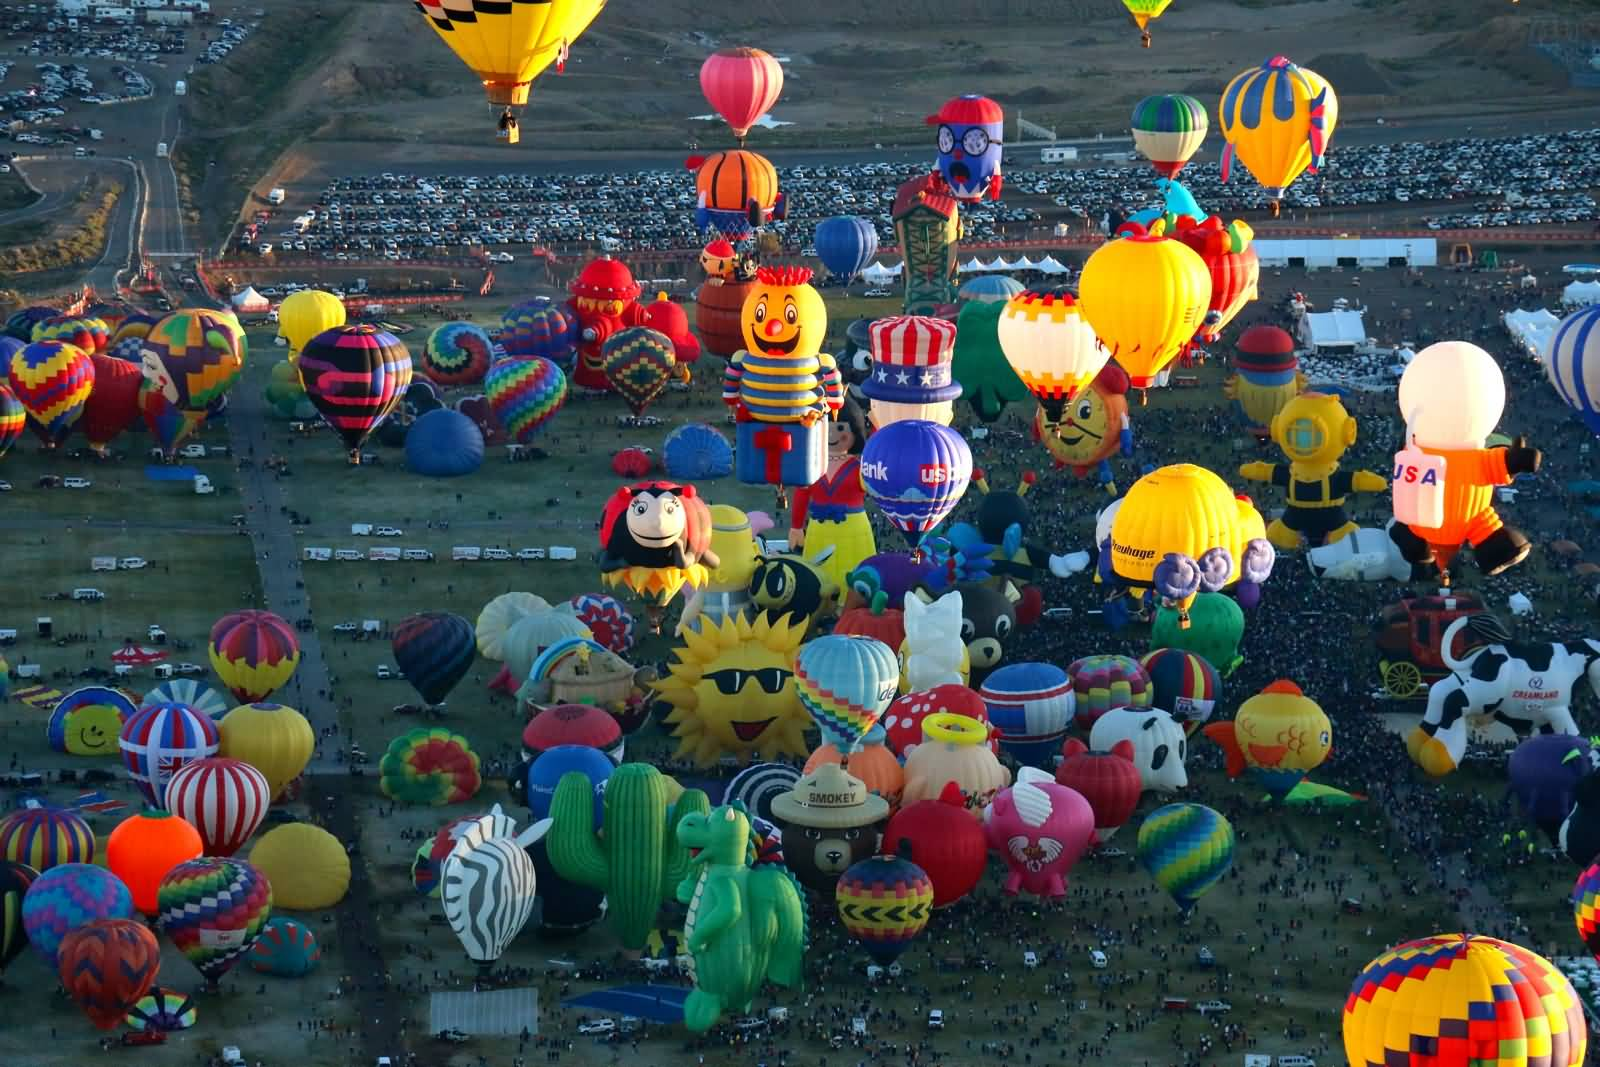 Aerial-View-Of-The-Balloons-At-Albuquerque-Balloon-Festival